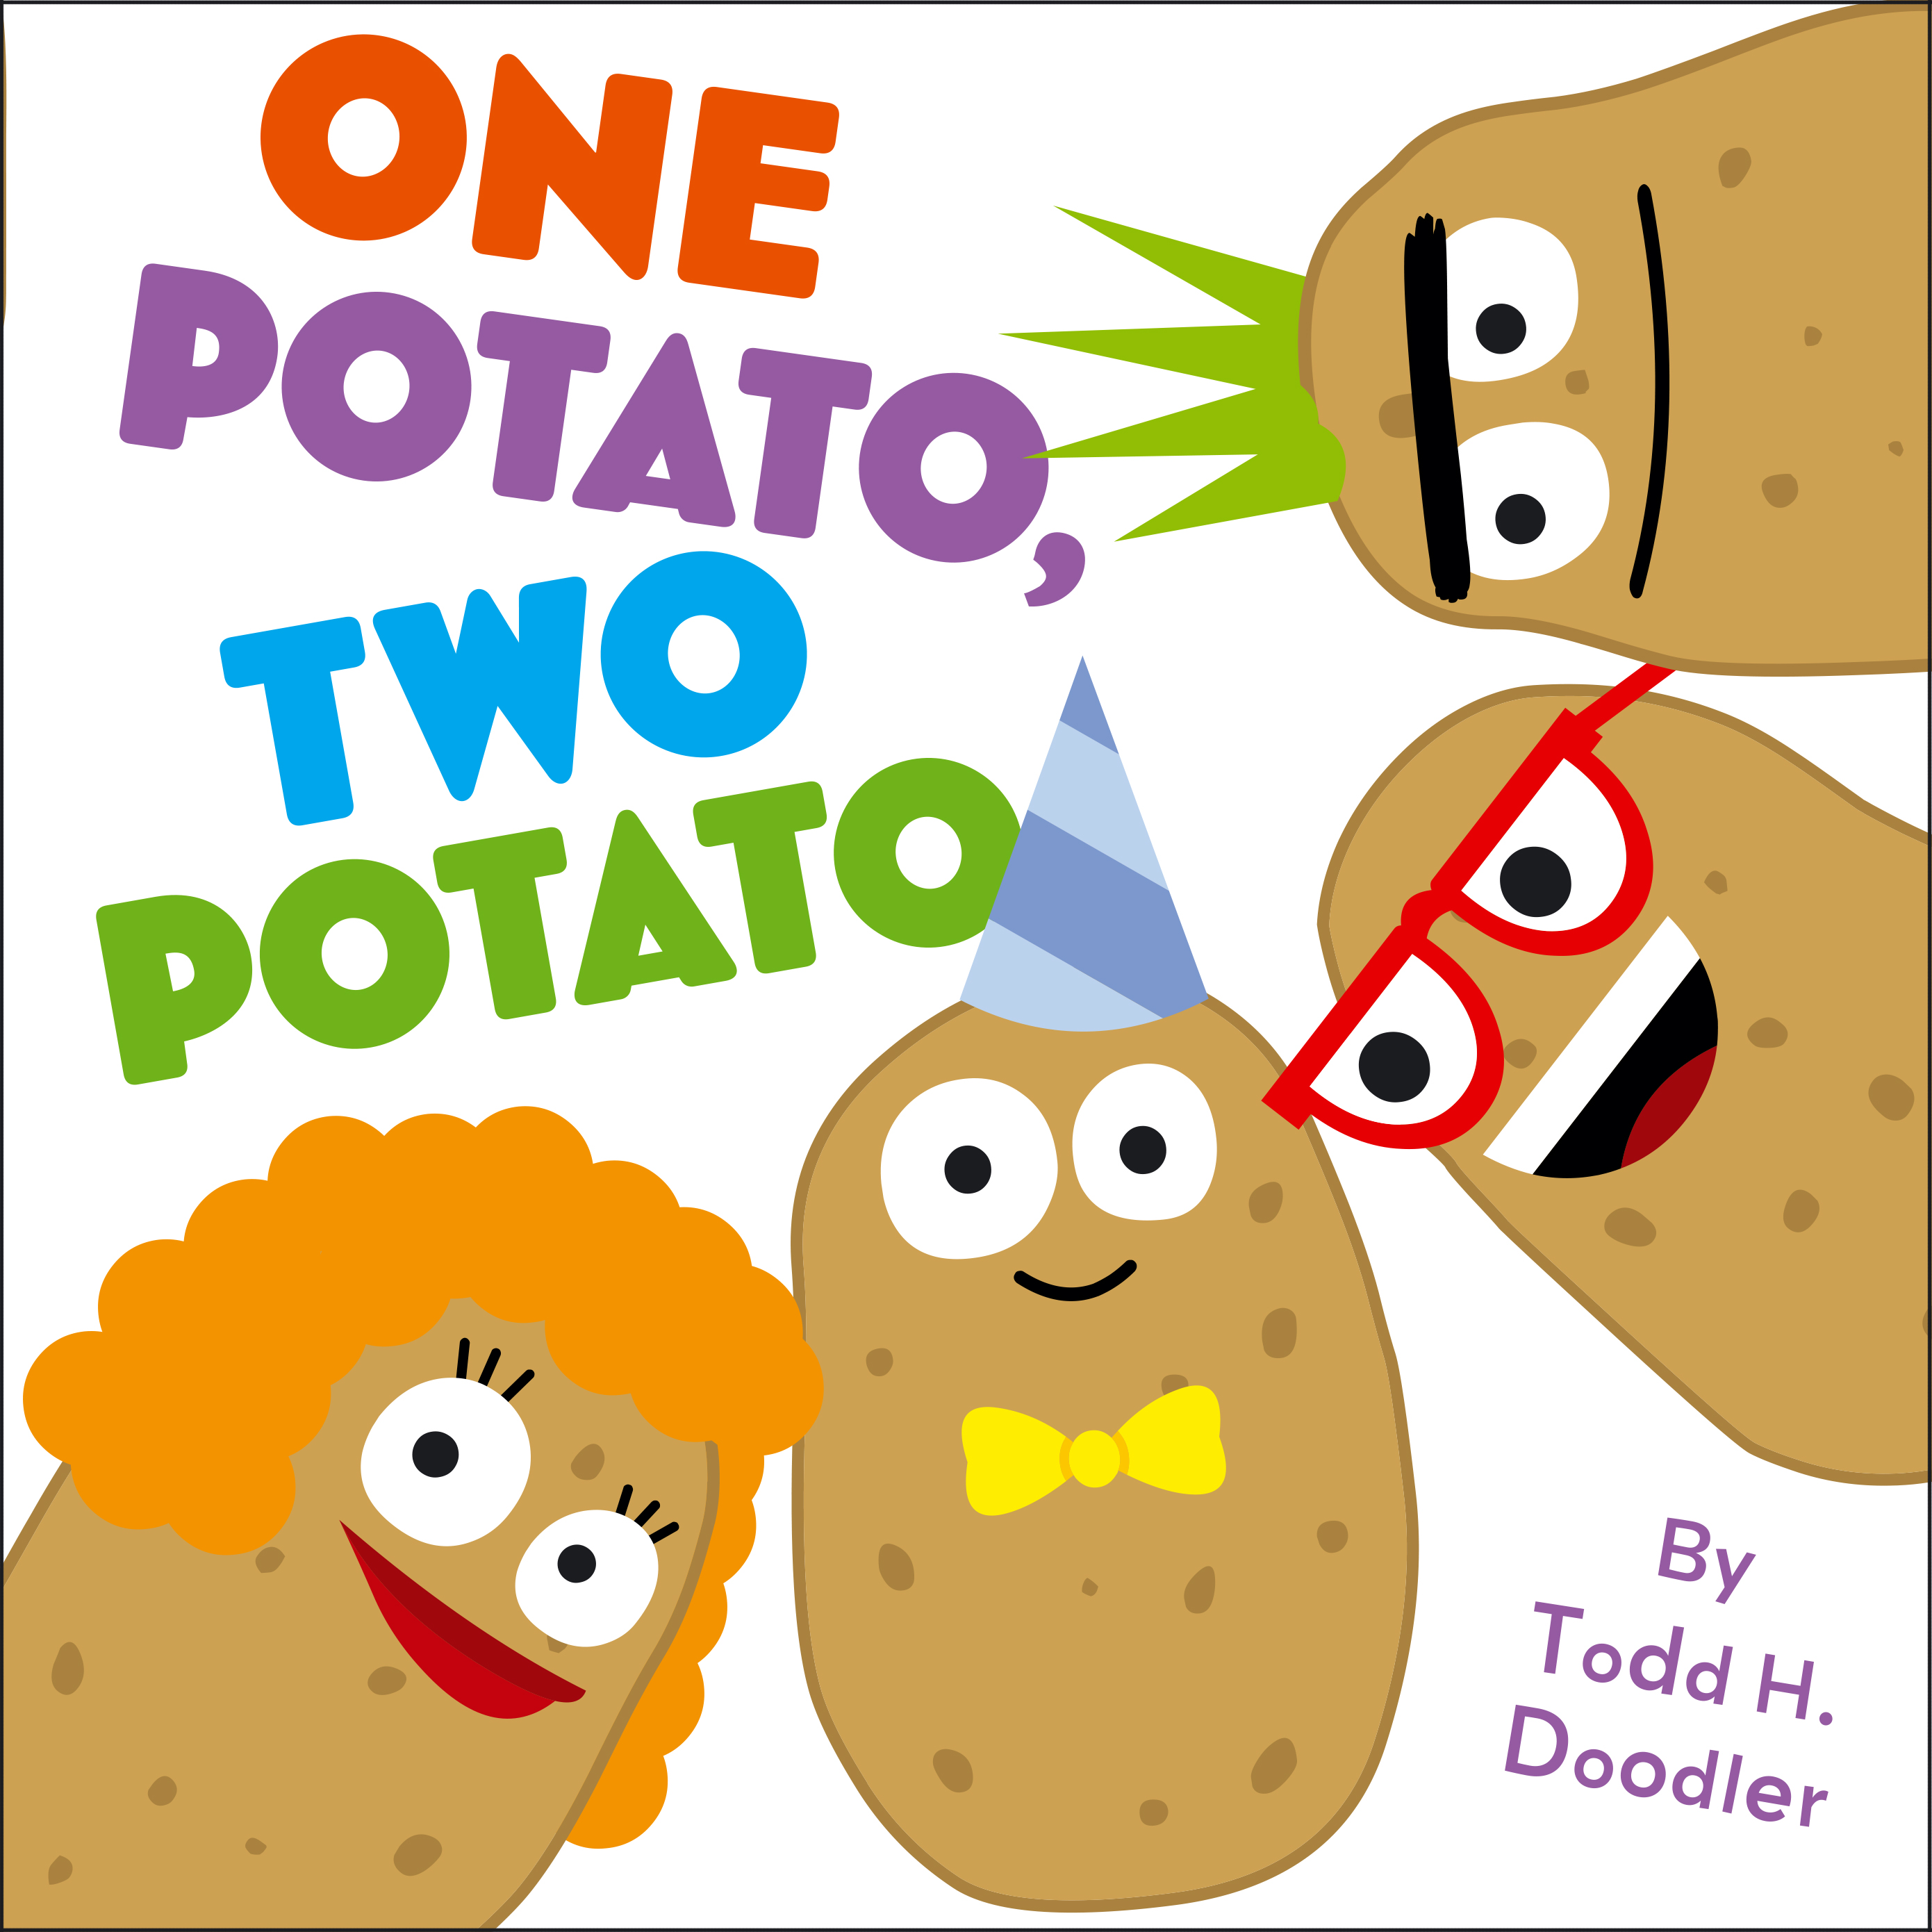 One-potato-two-potato-9781442485174_hr